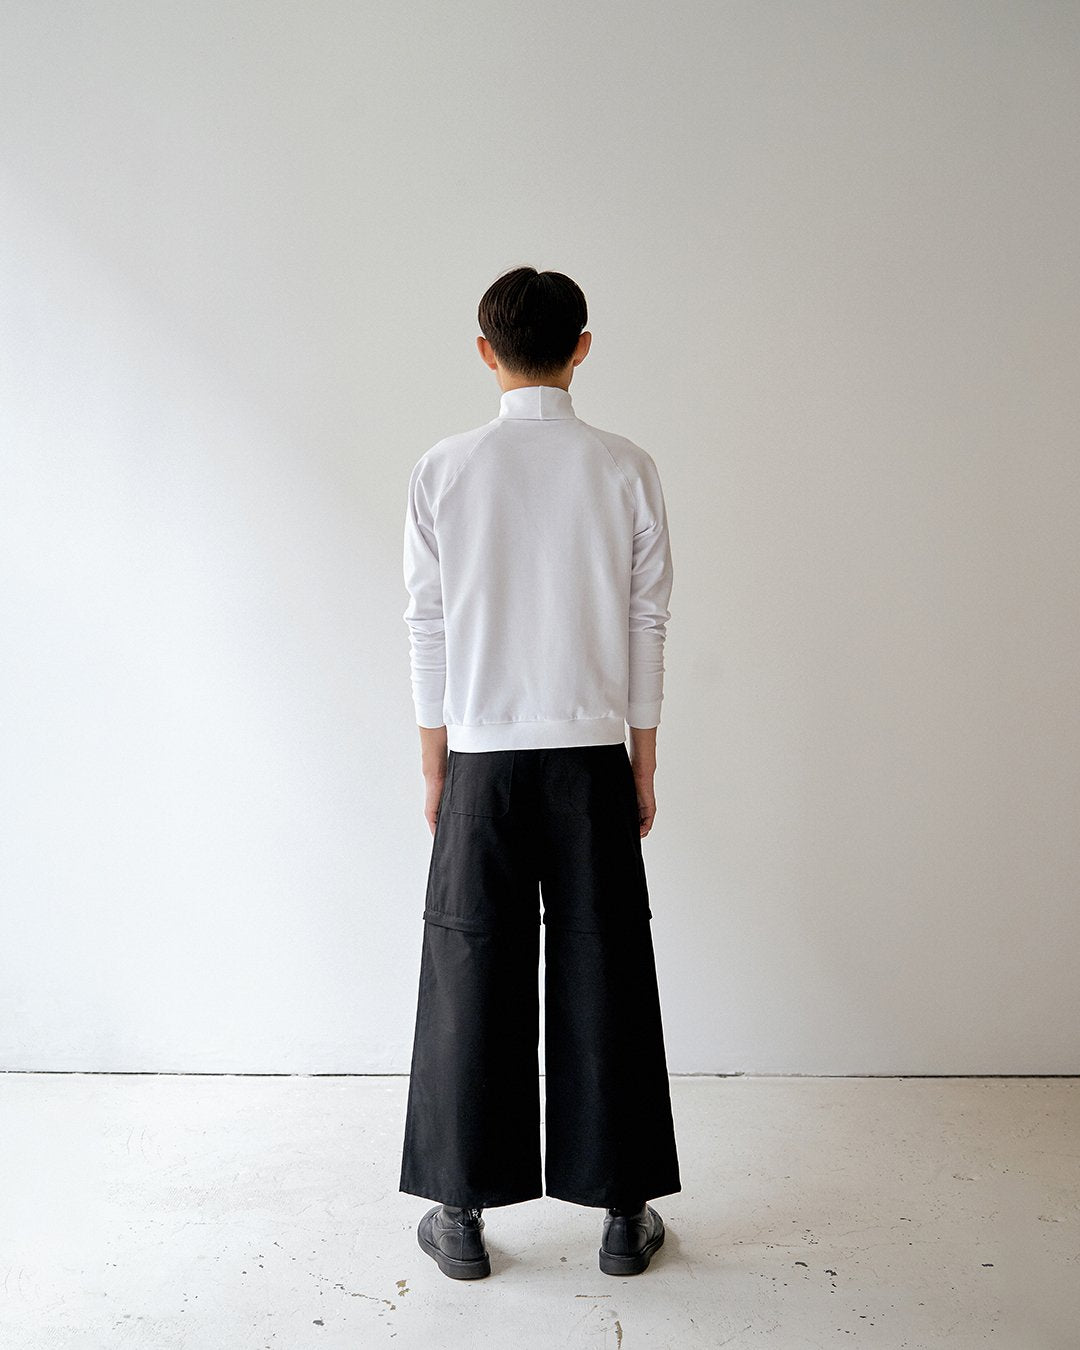 Pants Black ripstop convertible unisex genderless clothing montreal veri